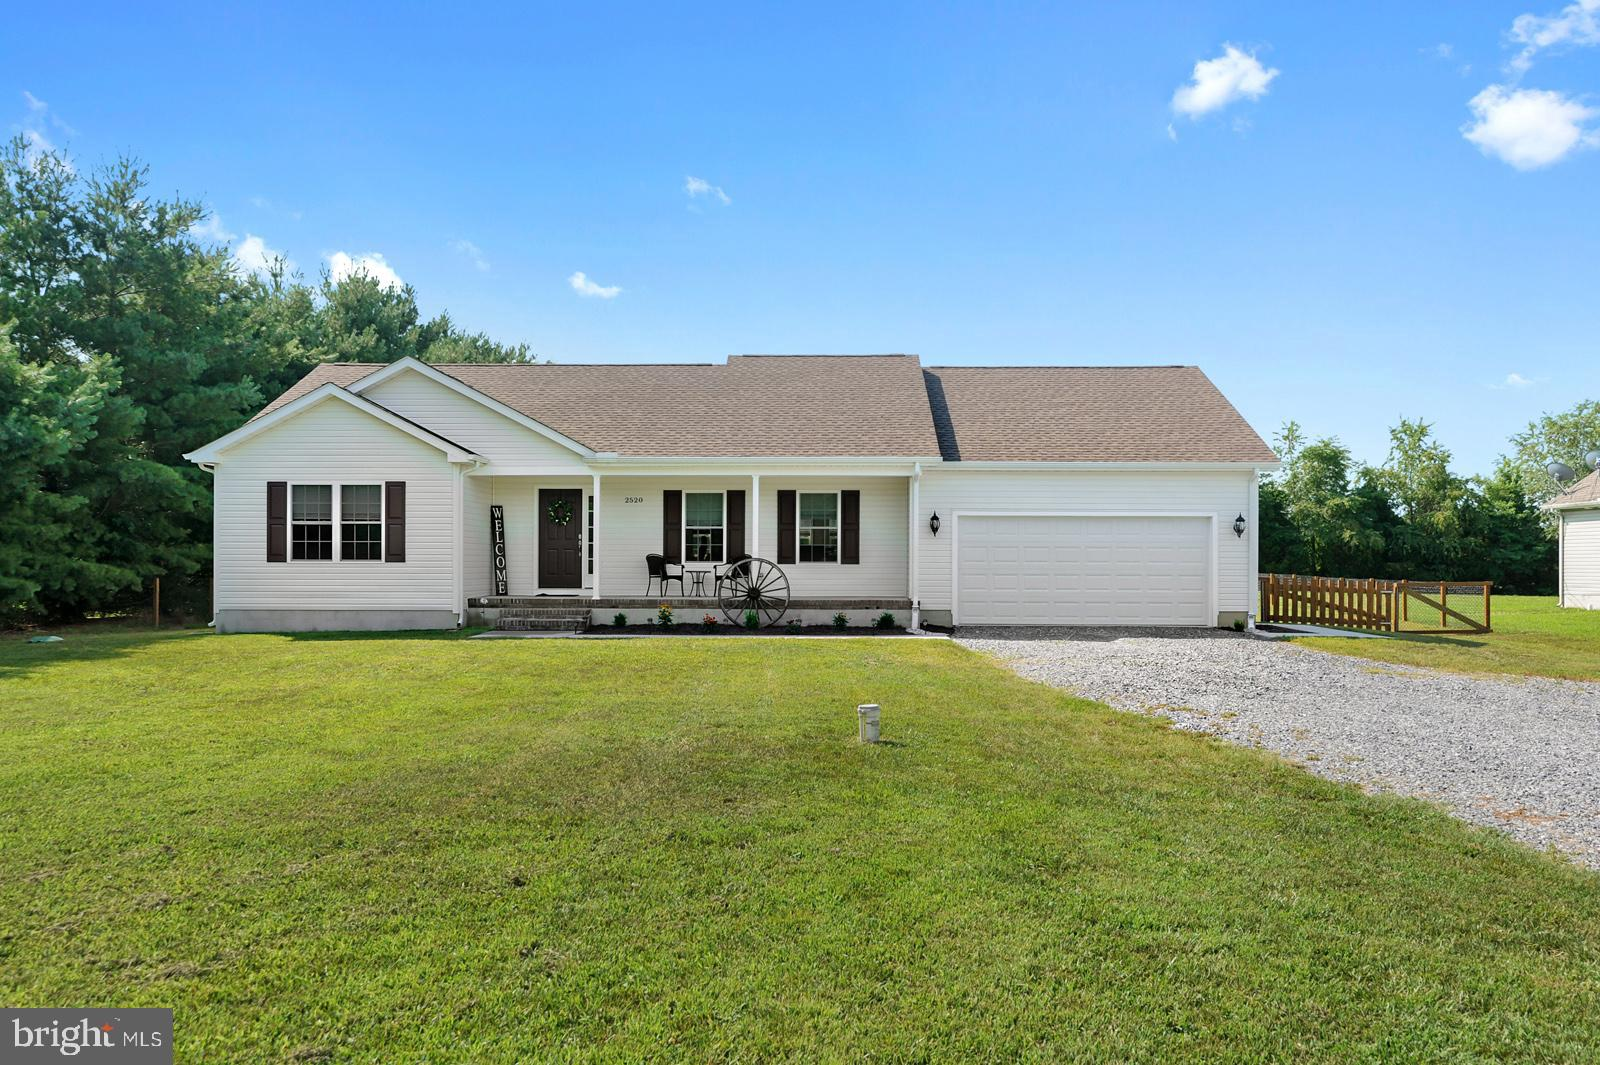 Here it is!  No HOA and Caesar Rodney School District!  Do not miss this 3 bed, 2  bath, 1-story home sitting on .75 acres.  It is more than move-in ready, it's practically brand new!  You will love the fresh look/feel of this home with luxury vinyl plank flooring, gray kitchen cabinets, granite countertops, stainless steel appliances, vaulted ceilings in the living room, ensuite in the primary bedroom, the cutest laundry room, front porch to sip coffee, and a yard that you dream of!  A deck off the back and a fully fenced-in yard with trees(!!)- you have the perfect blend of entertaining space and serenity.  Quiet neighbors!  This home qualifies for 100% financing!  Don't forget to check out the 3D 360 degree virtual tour!